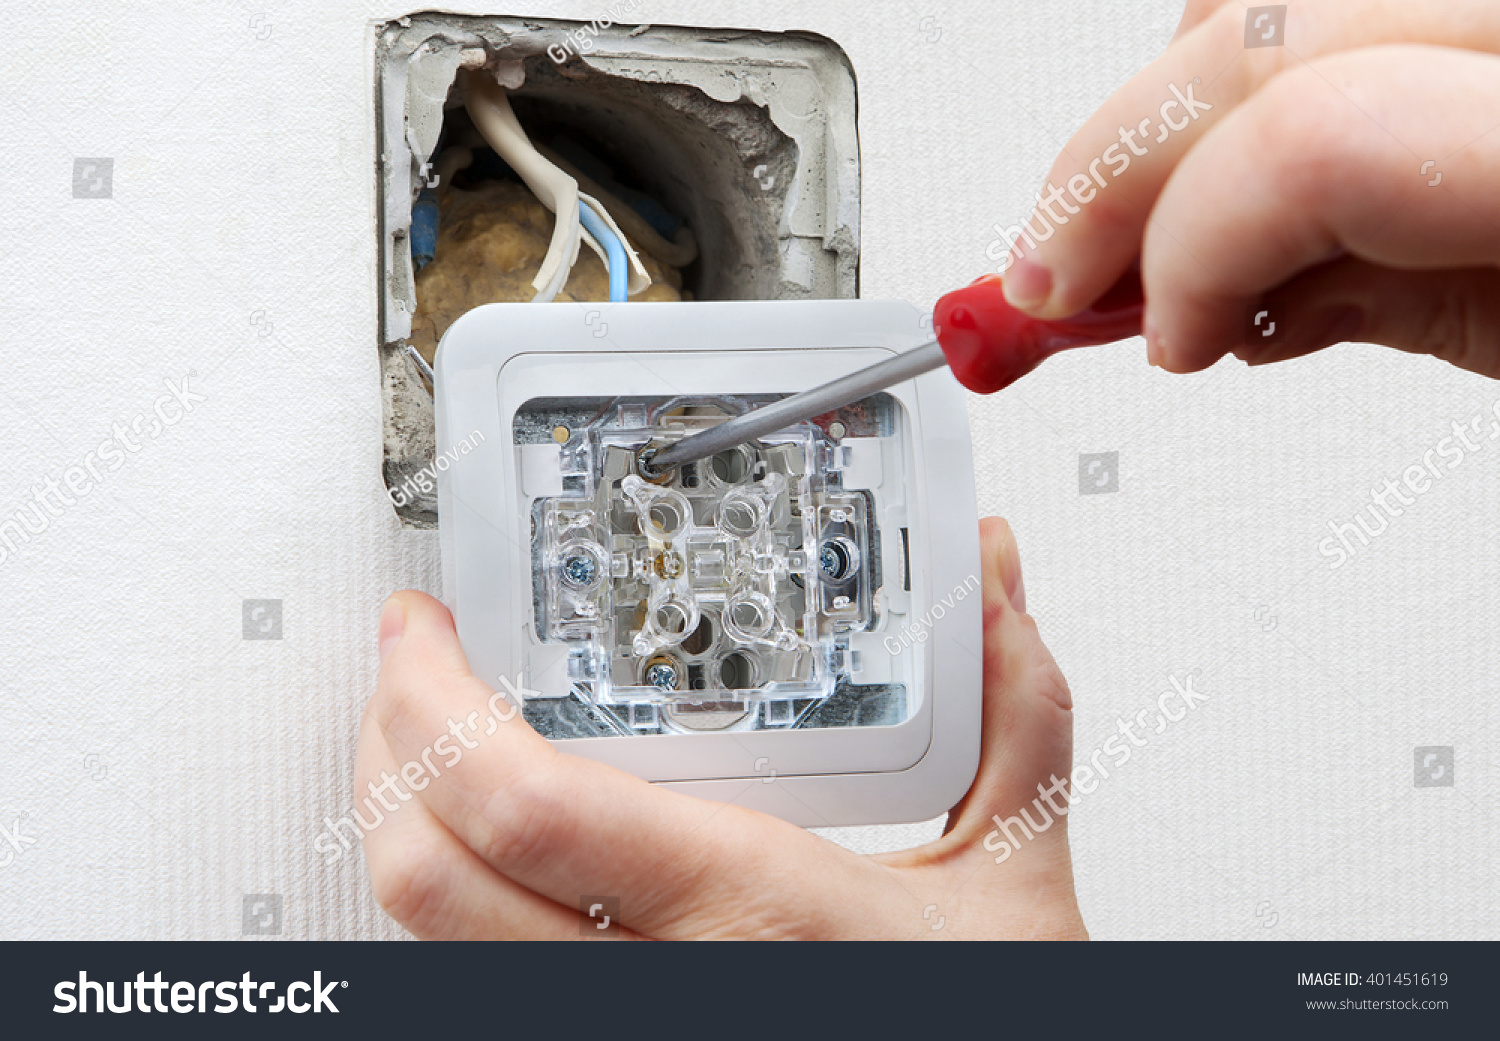 Change Light Switch Mounted Electrical Stock Photo Edit Now House Wiring A Switches Connect Wires From